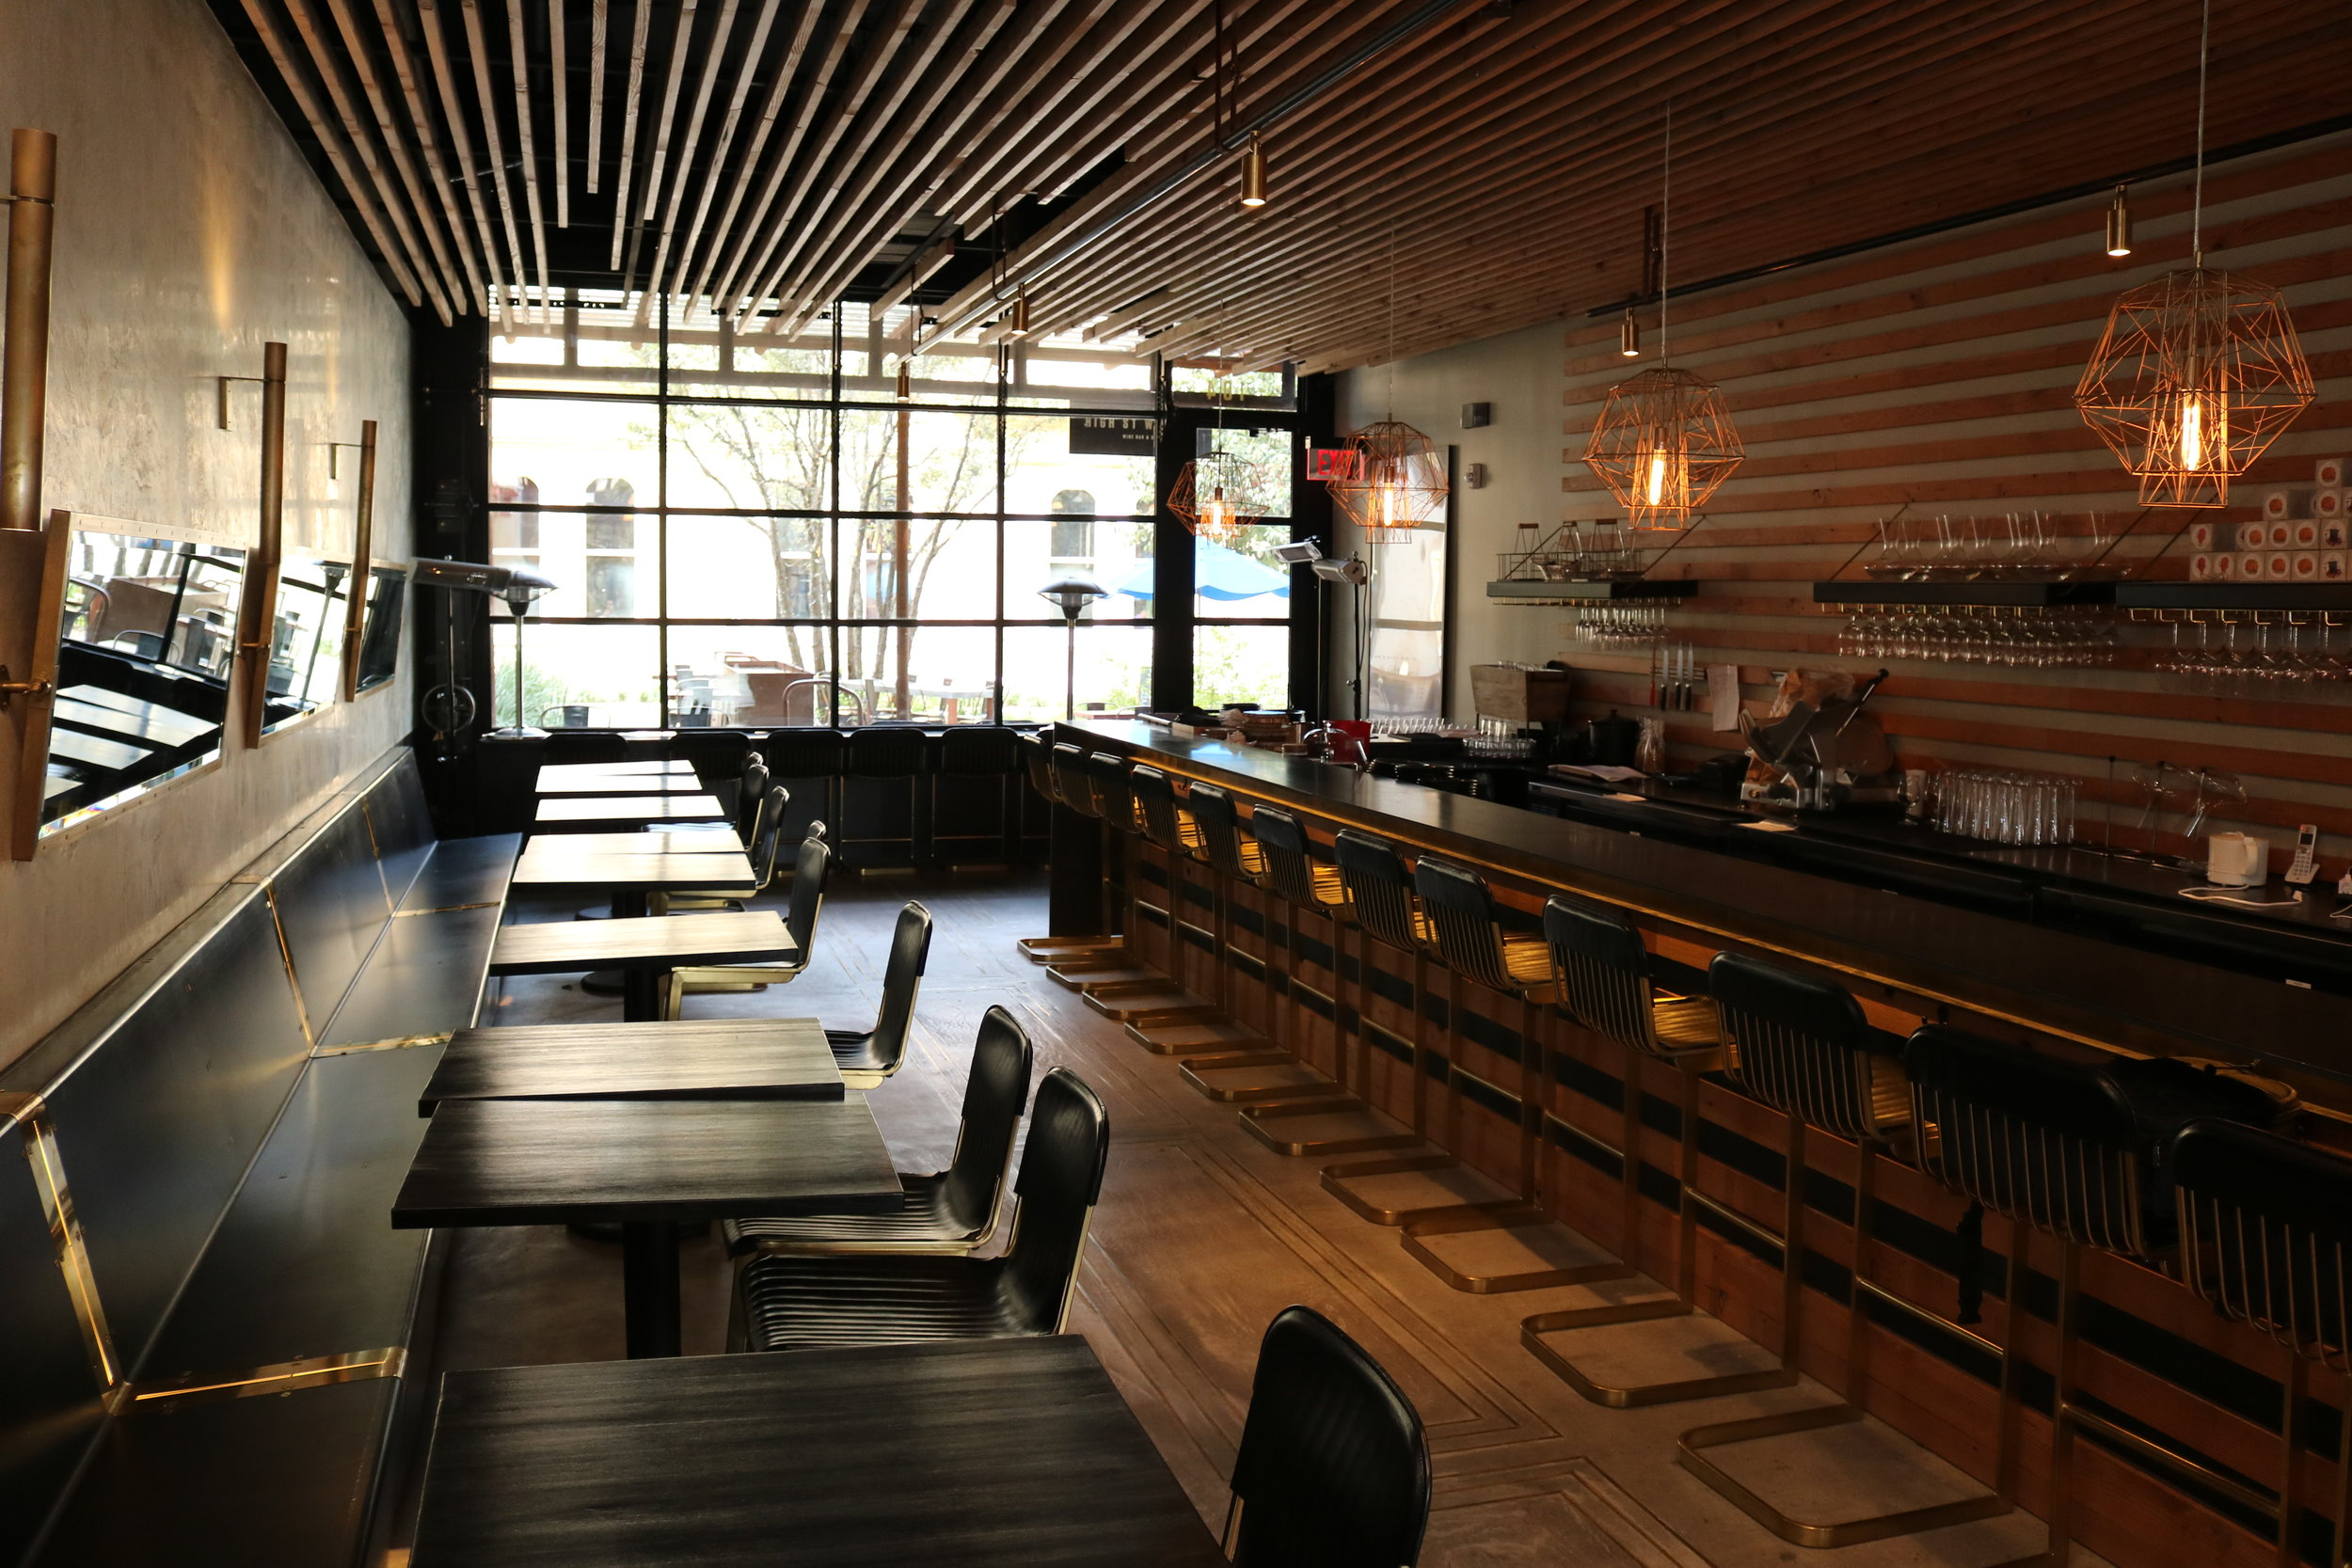 The interior of High Street Wine Co. explores an upscale design that caters to an elevated audience as well as the new wine drinker.